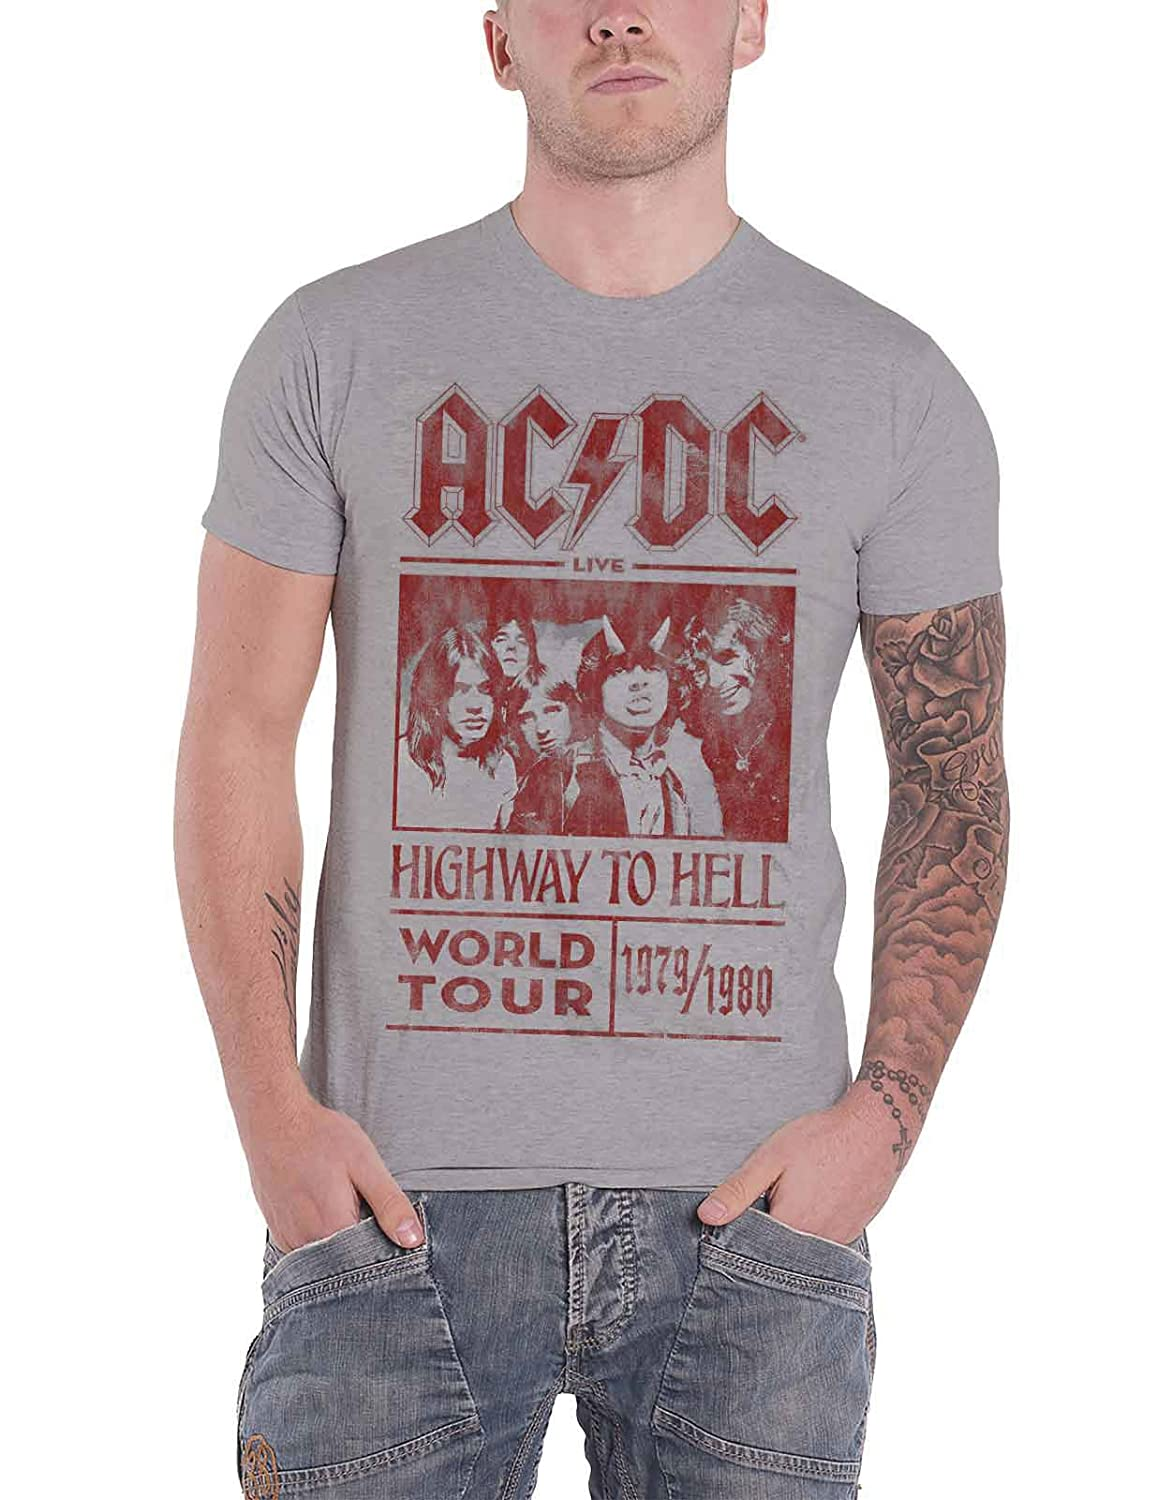 Ac/Dc T Shirt Highway To Hell World Tour 1979/1980 新しい 公式 メンズ グレー